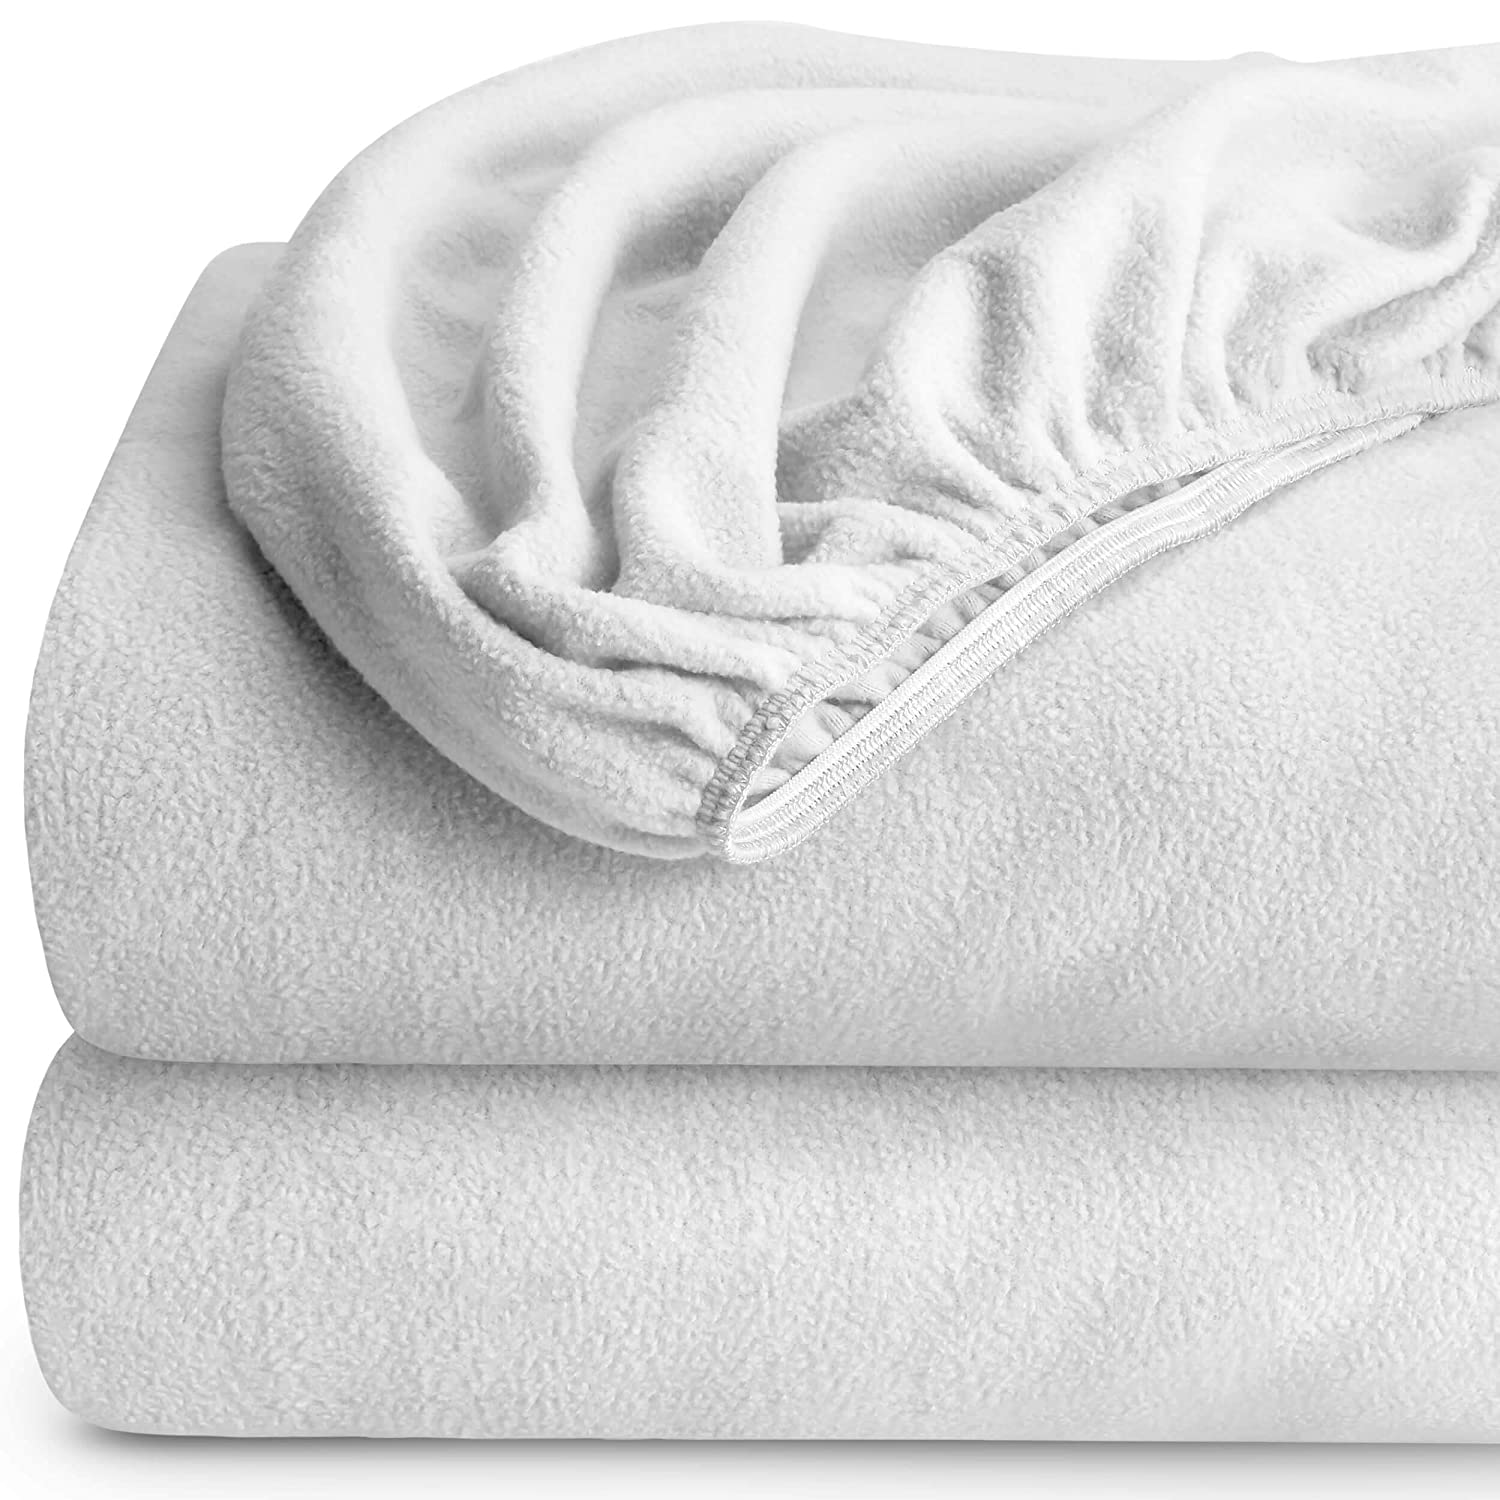 2 Pack All Season Cozy Warmth Bare Home Super Soft Fleece Fitted Sheet Pill Resistant Twin Size Twin, Grey Breathable /& Hypoallergenic Deep Pocket - Extra Plush Polar Fleece